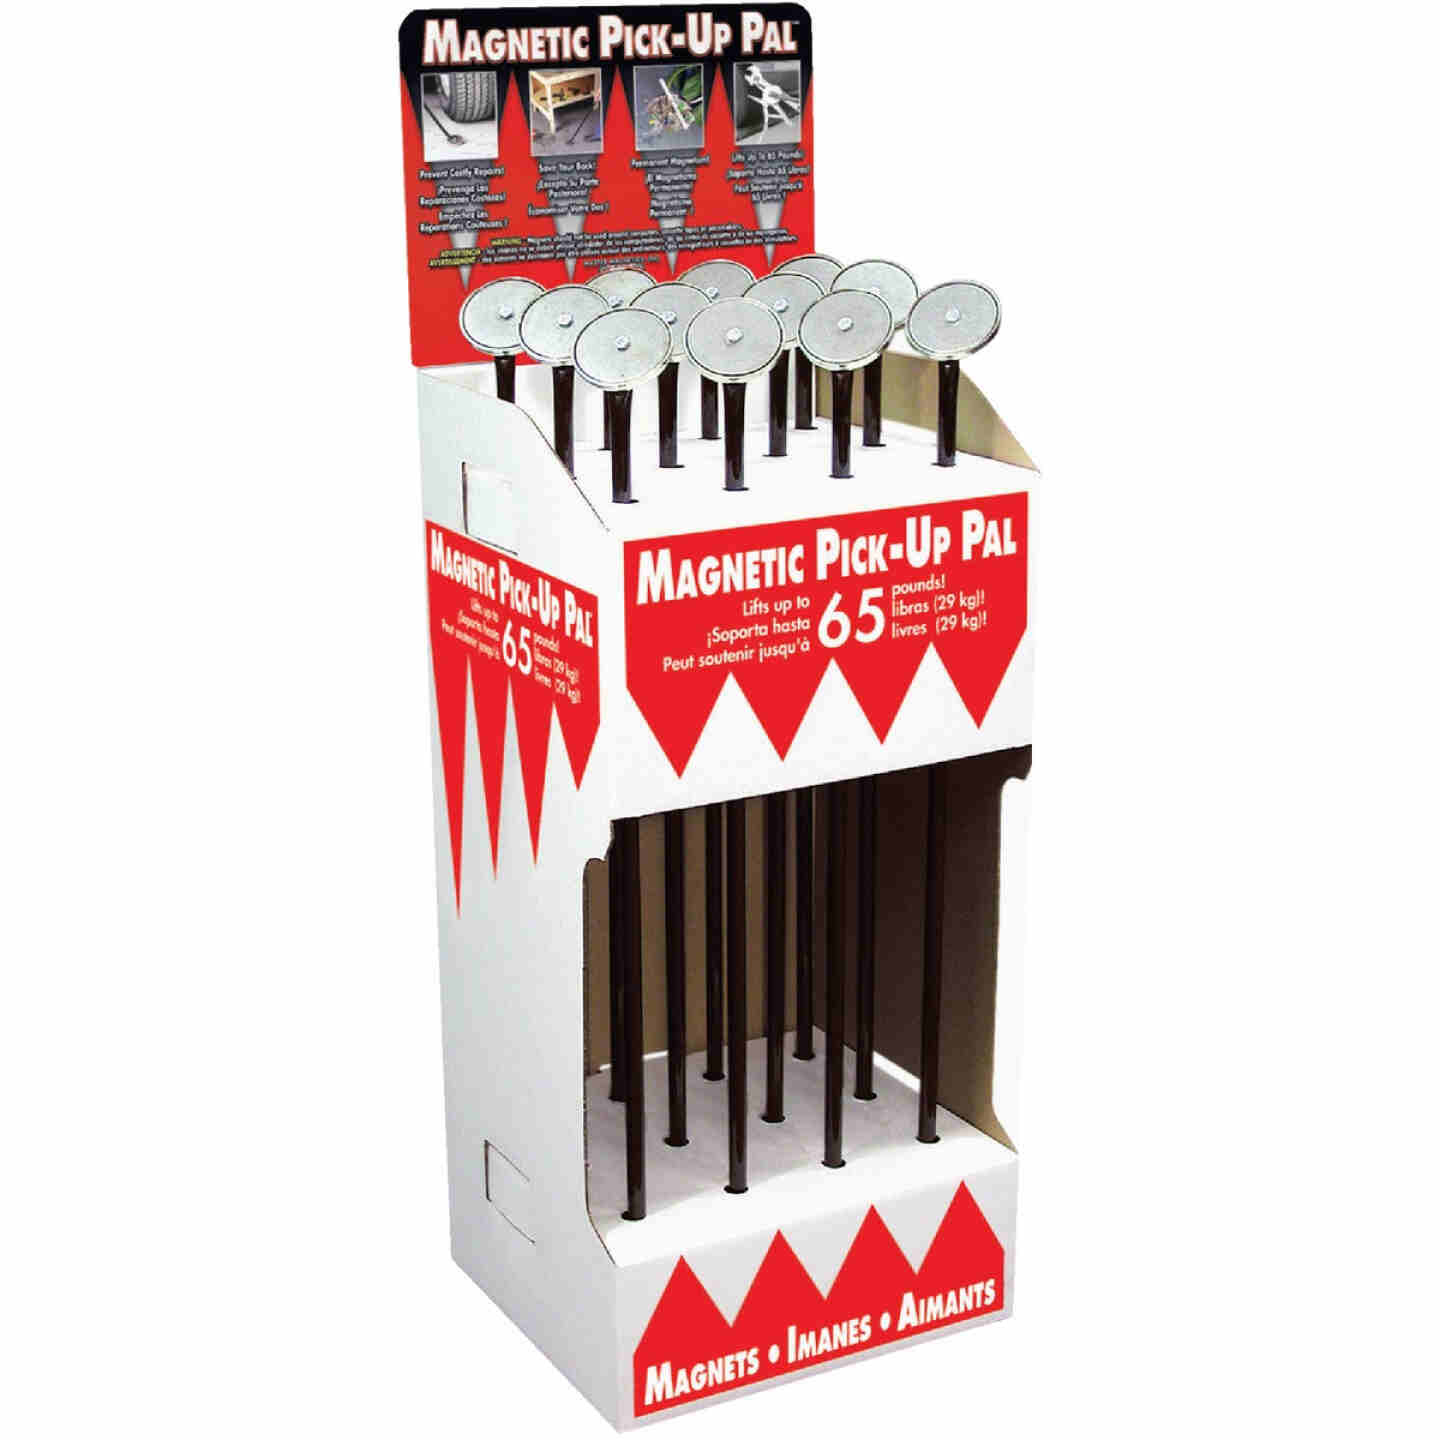 Master Magnetics Magnet Source 36 In.Magnetic Pick-Up Tool Image 3